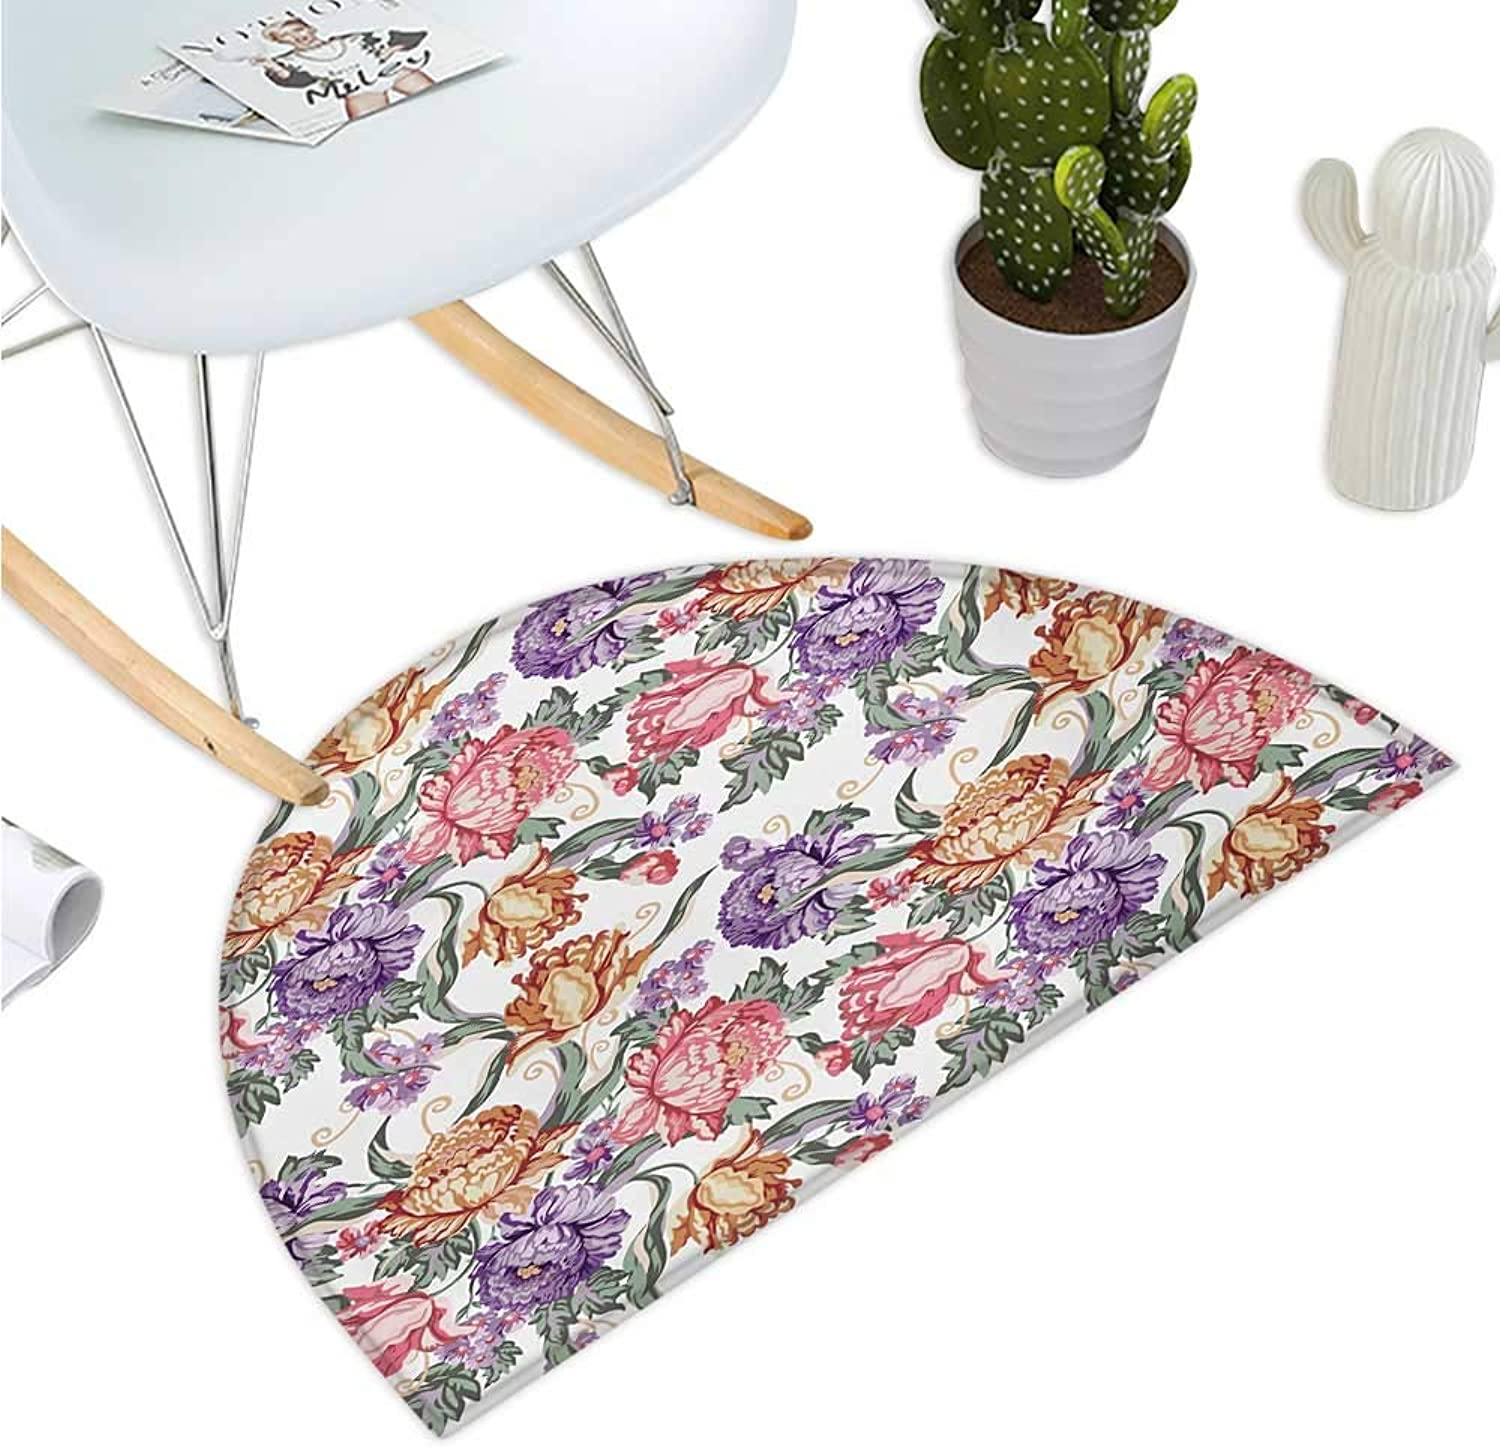 Floral Semicircular Cushion Vintage colorful Flowers and Curls on White Background Romantic Spring Pattern Print Bathroom Mat H 39.3  xD 59  Multicolor